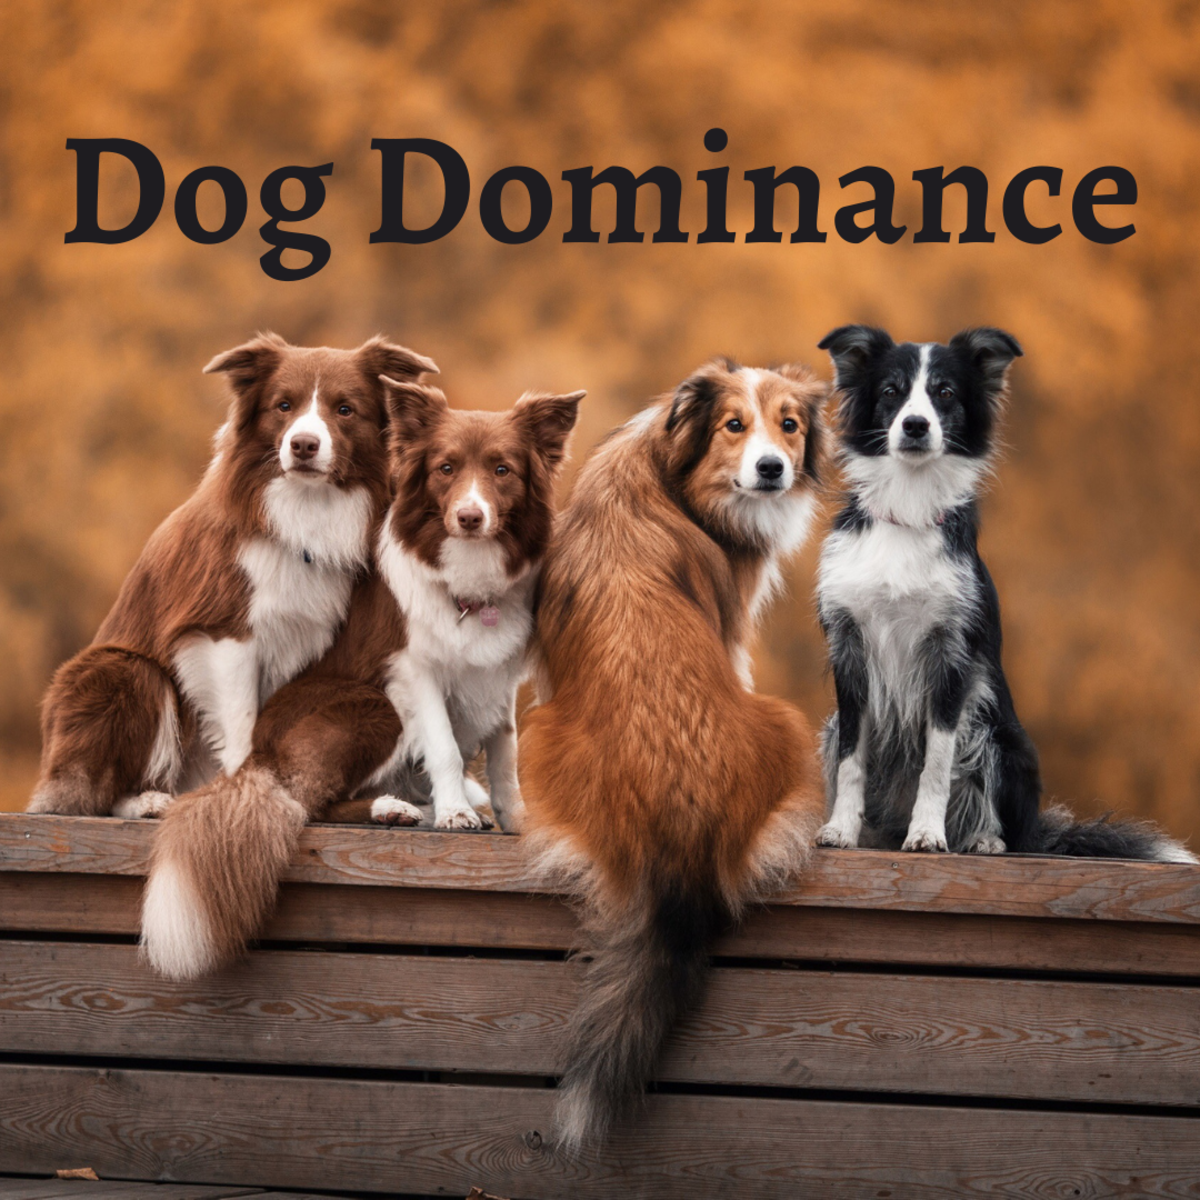 Dog dominance theory—what is it?